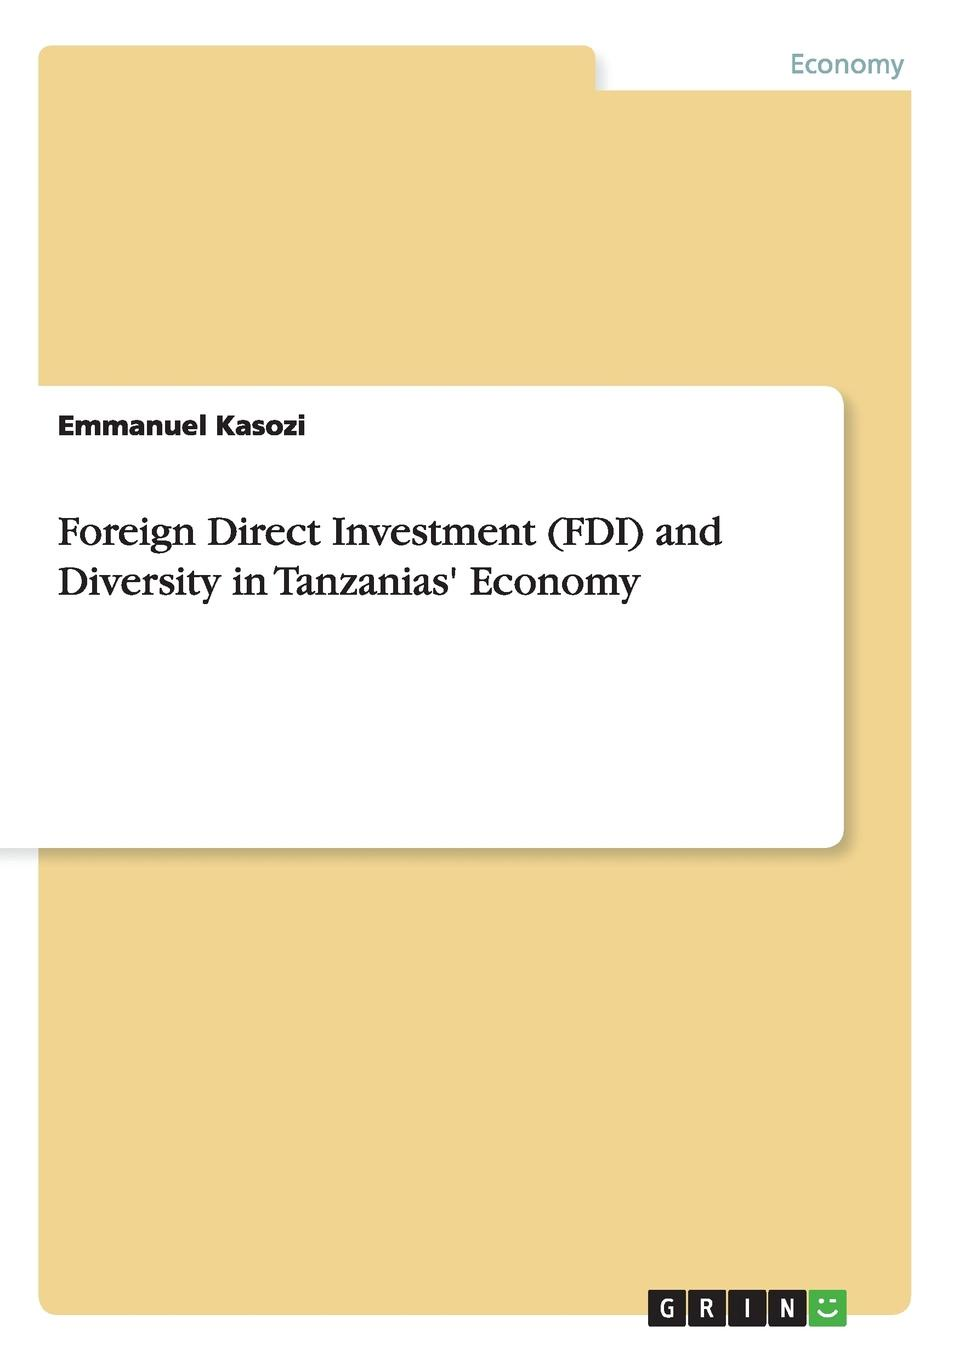 Emmanuel Kasozi Foreign Direct Investment (FDI) and Diversity in Tanzanias. Economy musa argungu muhammad pastoralists girls education in africa a study of emusoi center in northern tanzania